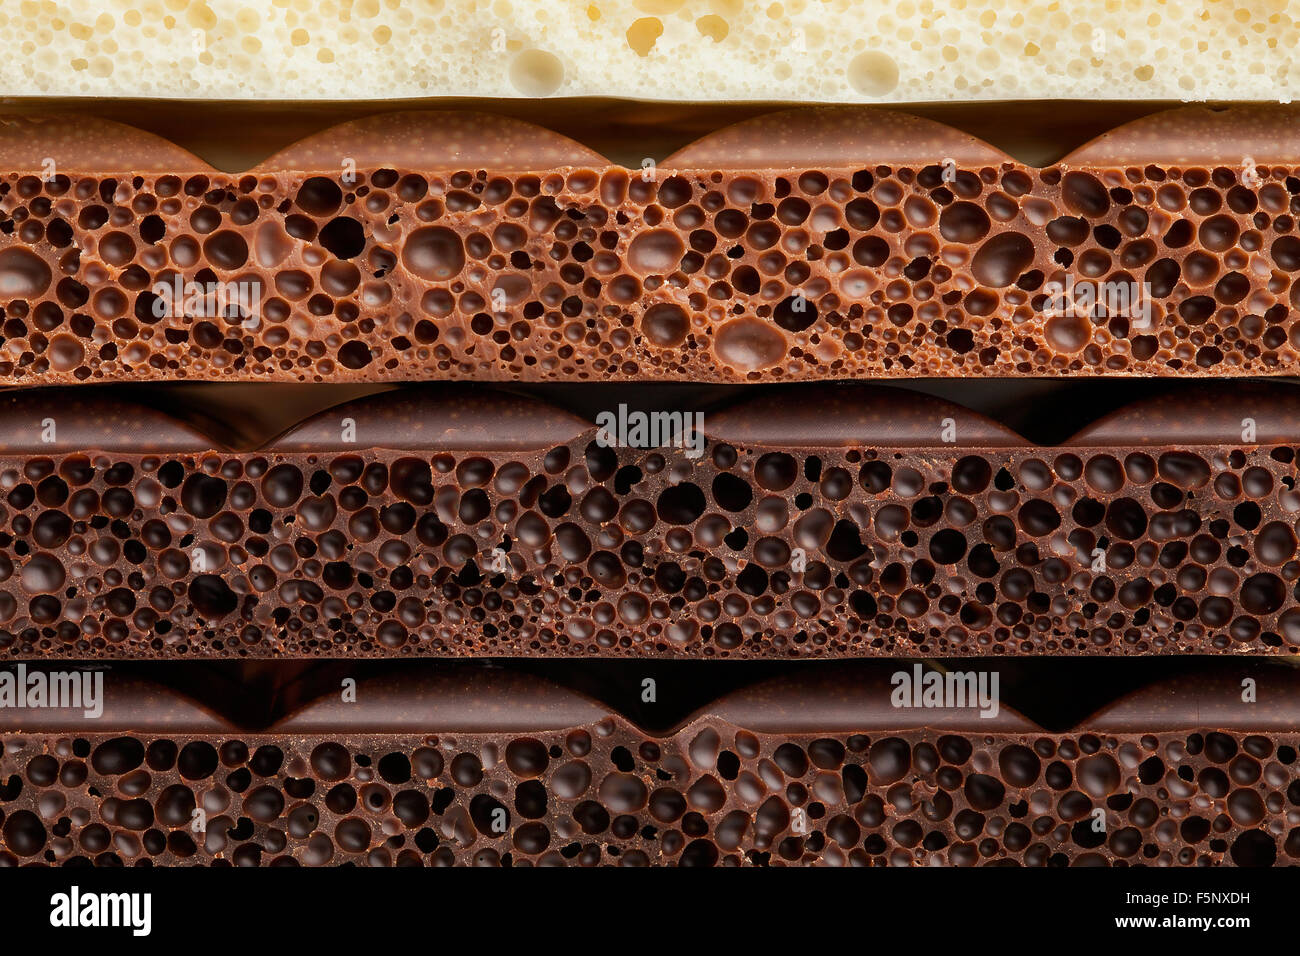 La texture de chocolat Photo Stock